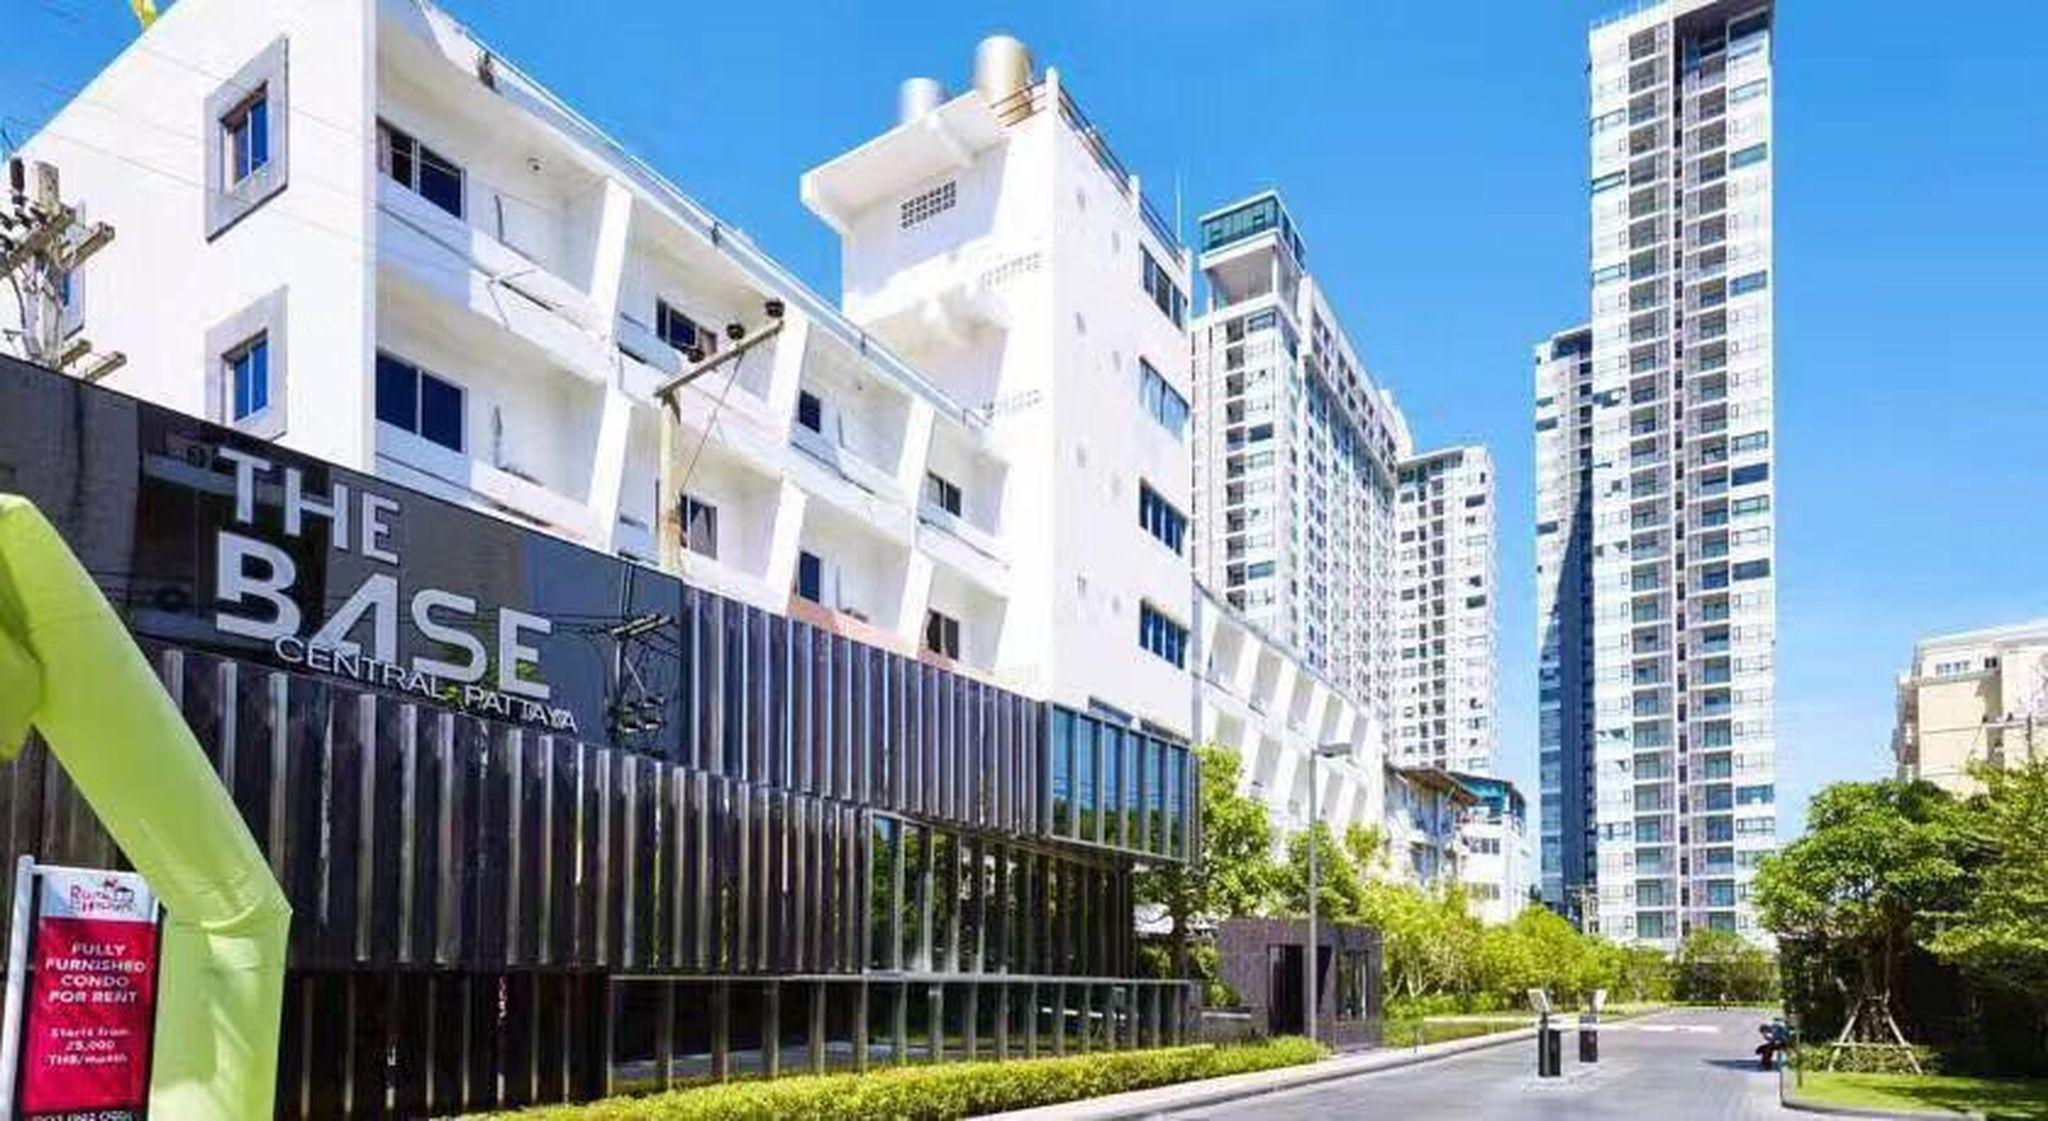 The Base Central Pattaya by Minsu Double Suite The Base Central Pattaya by Minsu Double Suite